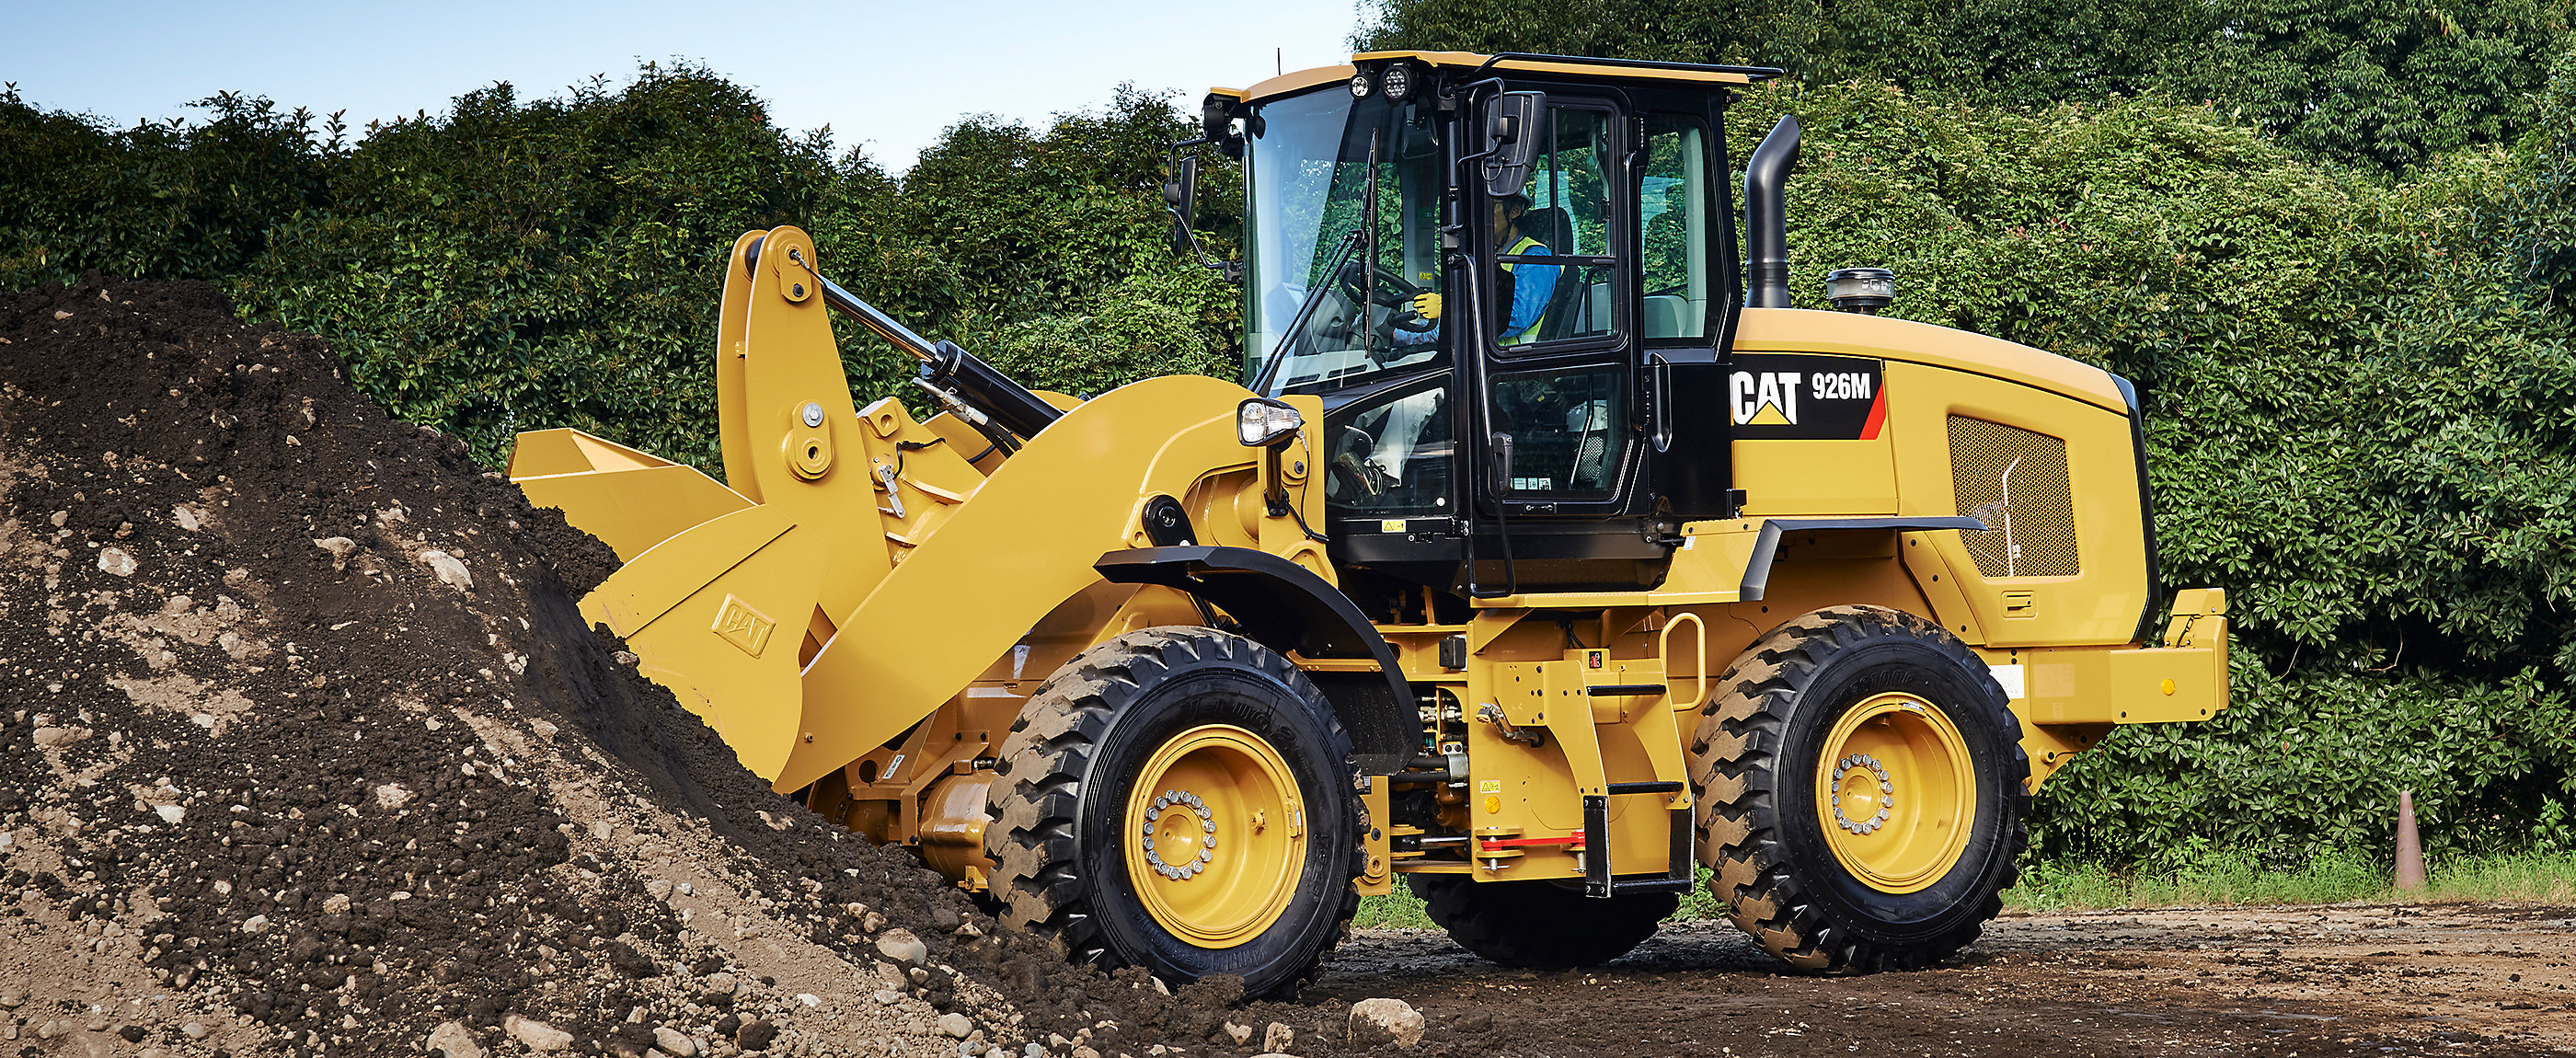 The Cat 938M is setting standards for productivity, fuel efficiency and operator comfort.